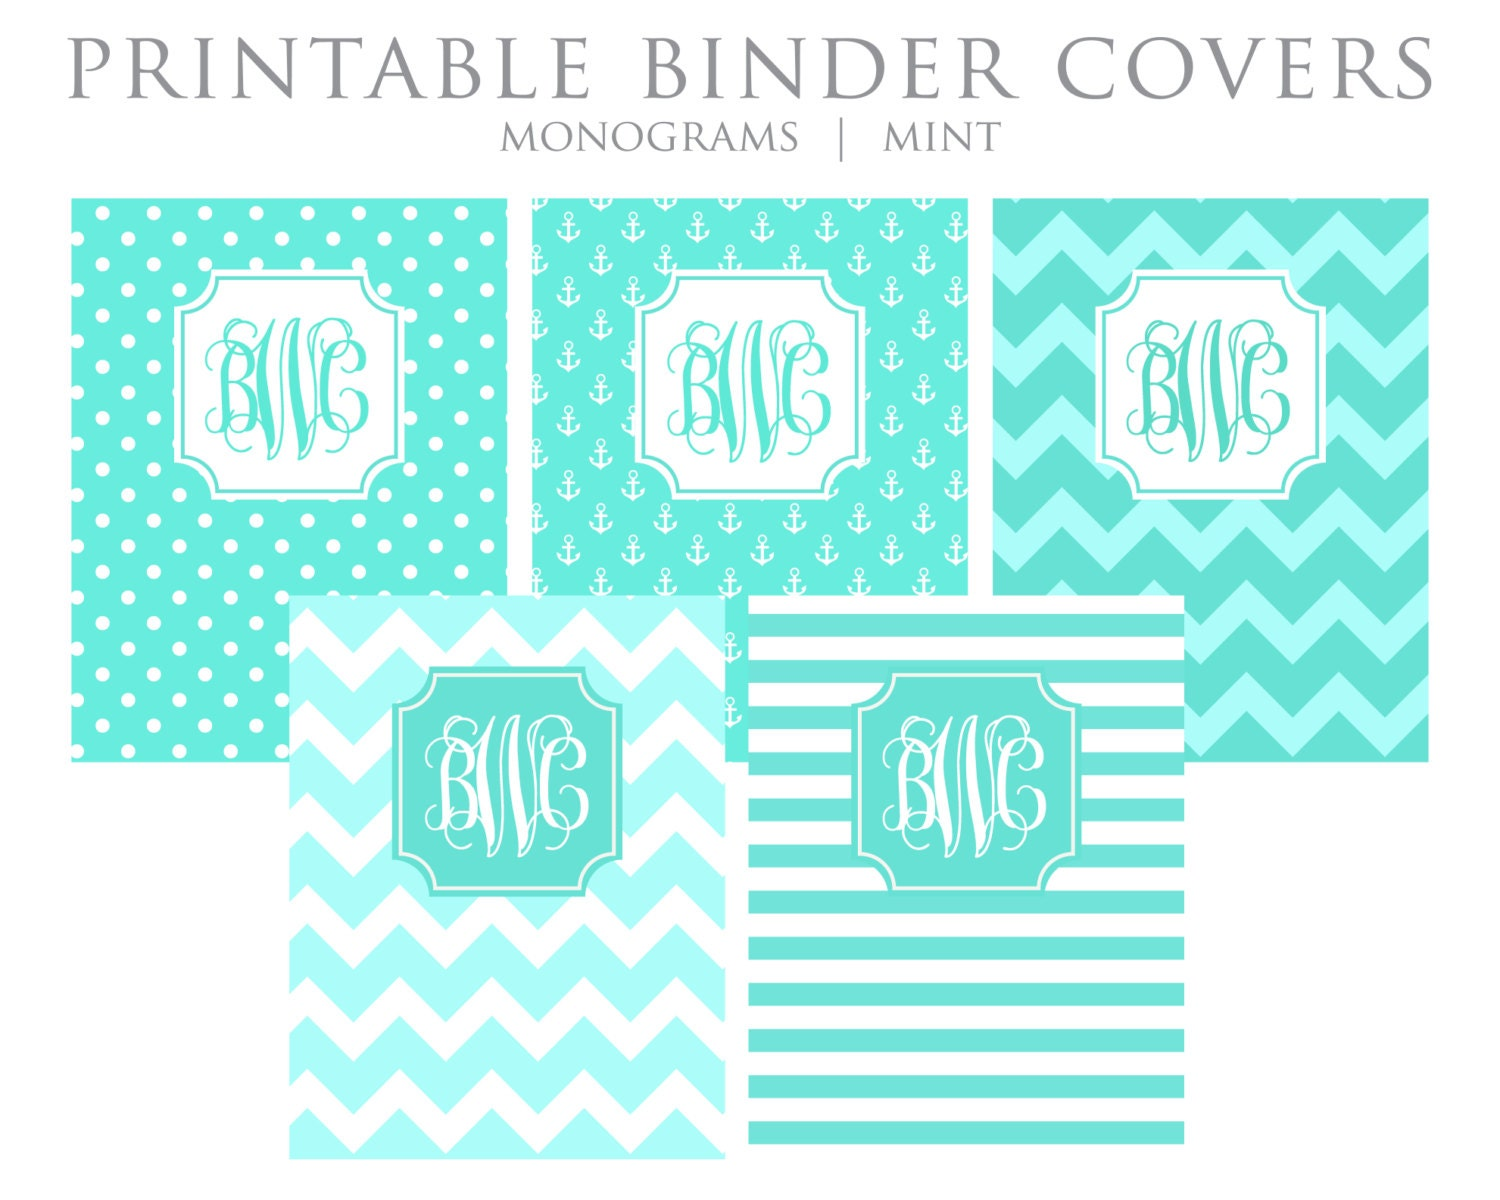 This is a picture of Universal Printable Monogram Binder Cover